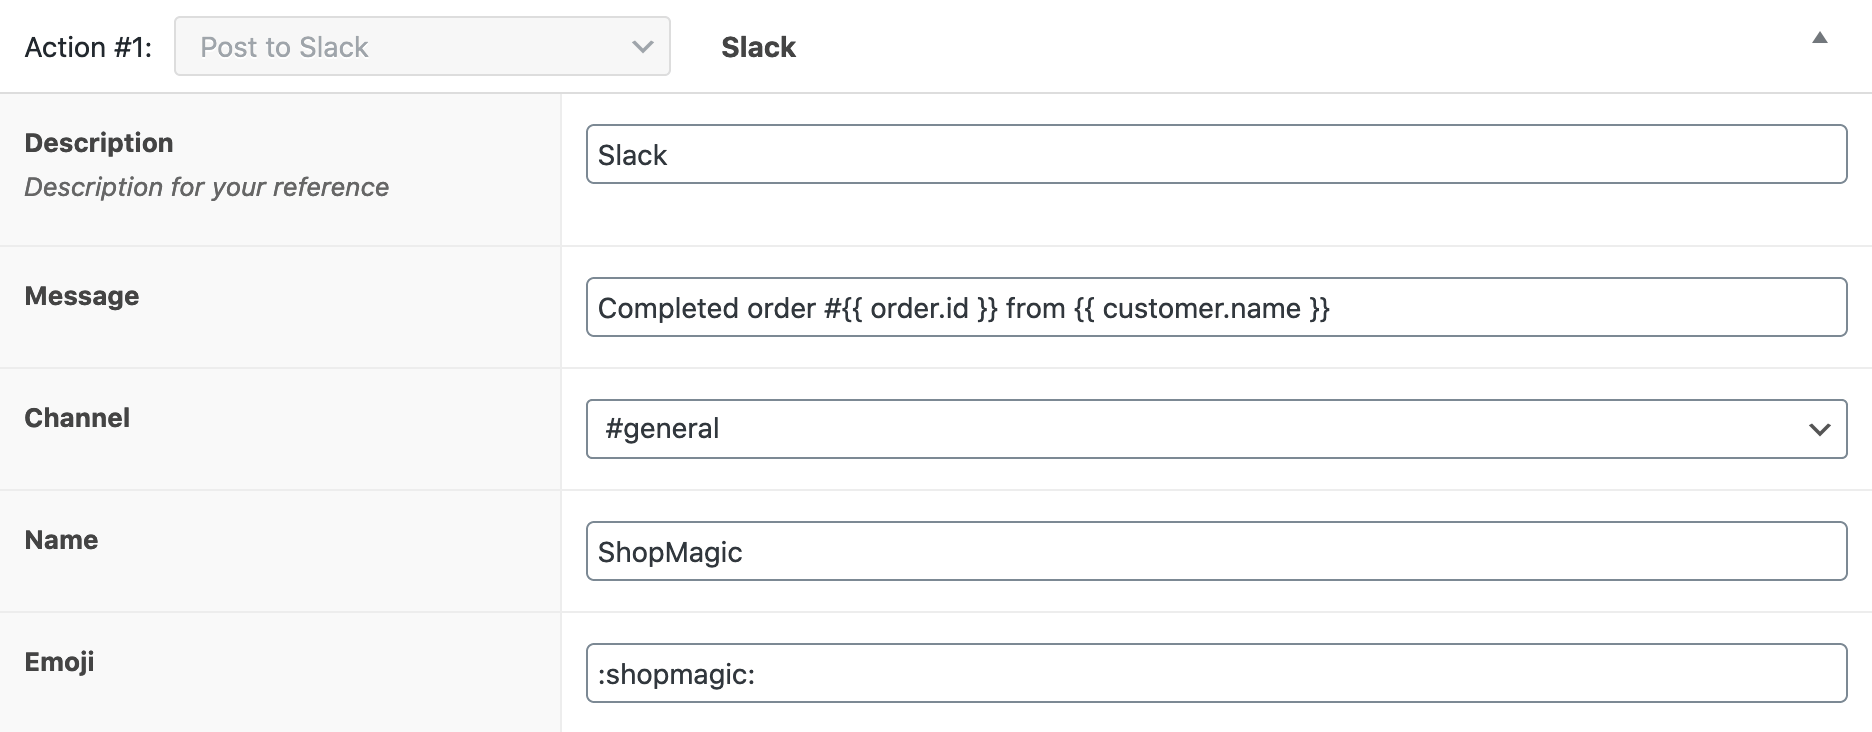 WooCommerce Slack Action